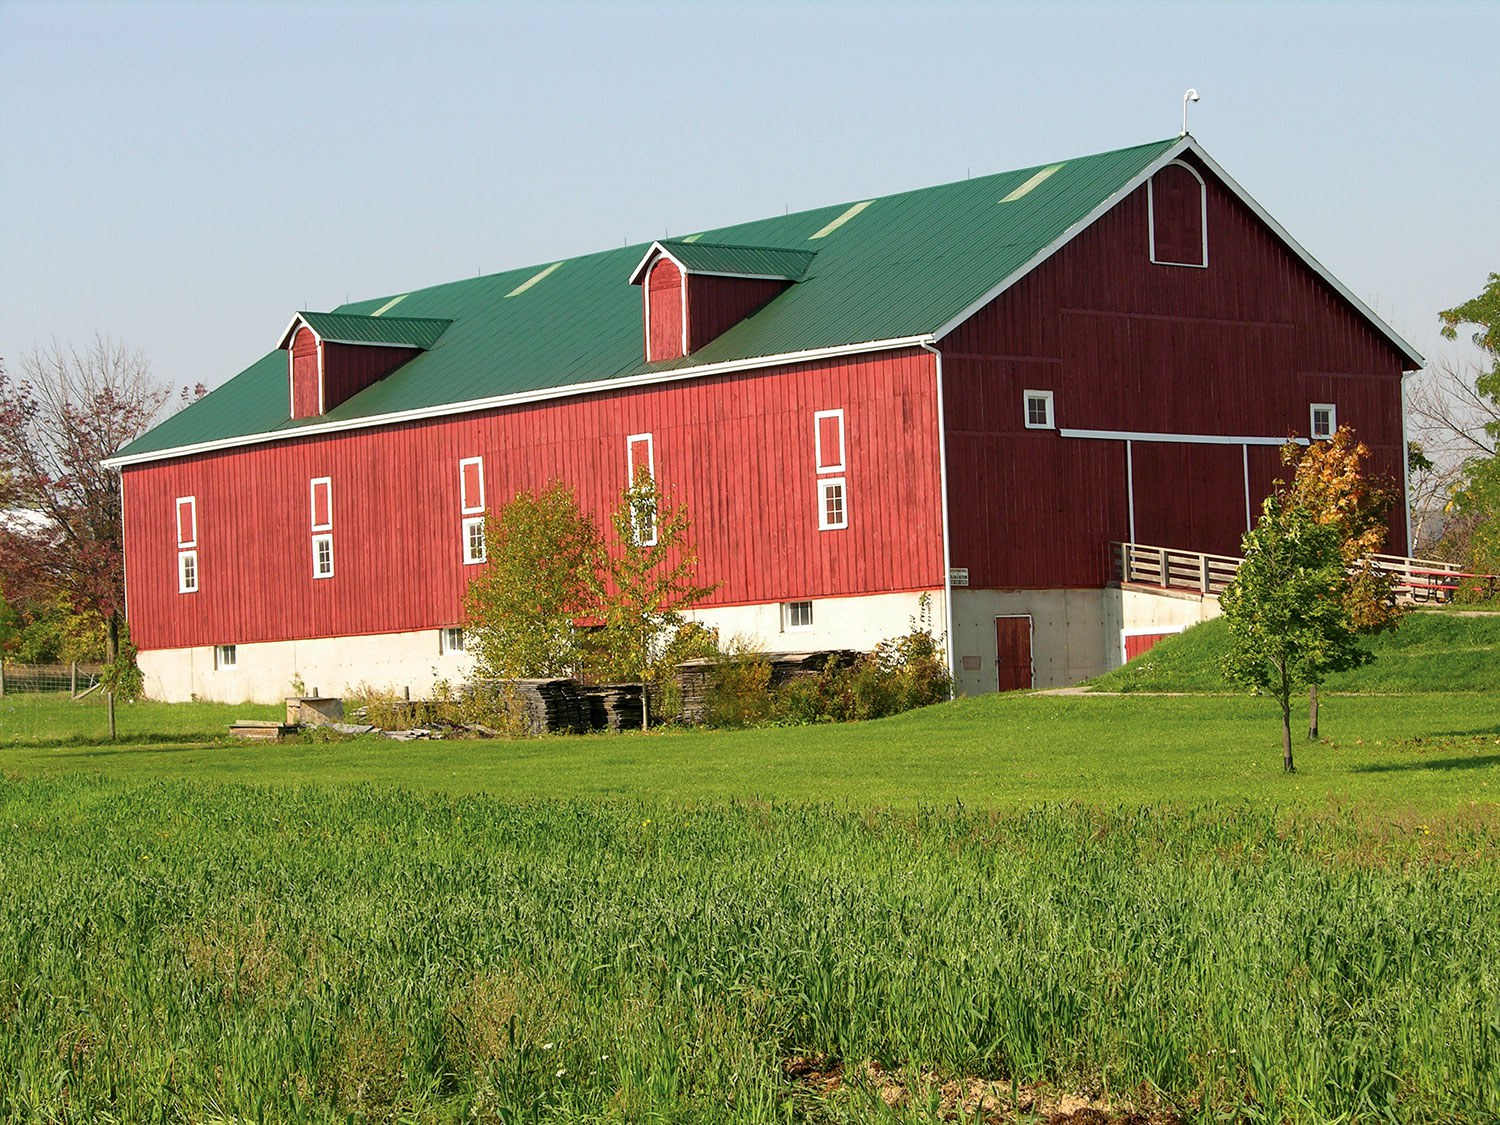 The Elliott-Harrop Barn is one of many buildings to explore at Country Heritage Park.